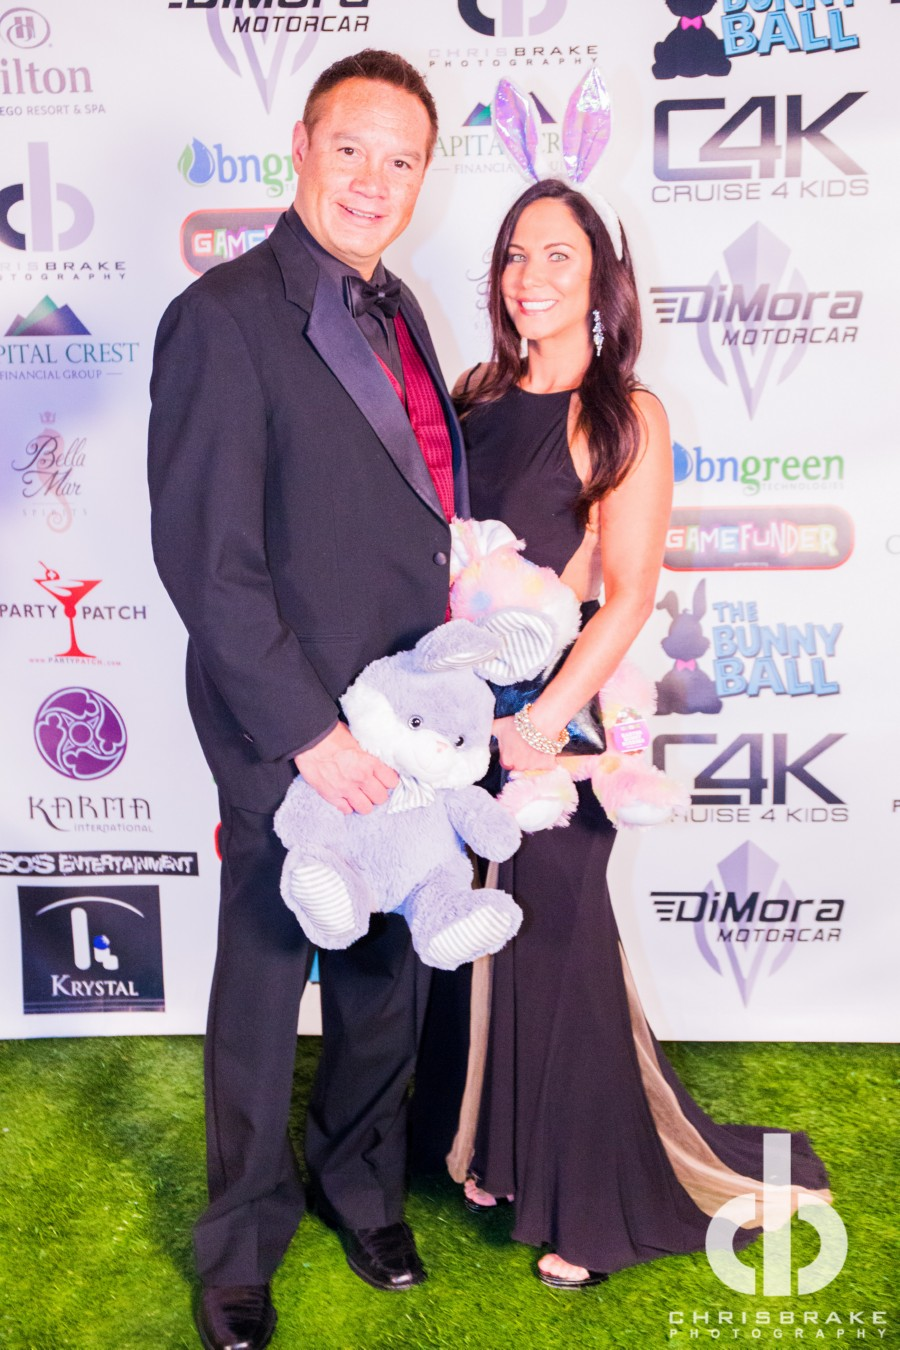 Bunny Ball 2016 - Chris Brake Photography - 132.jpg